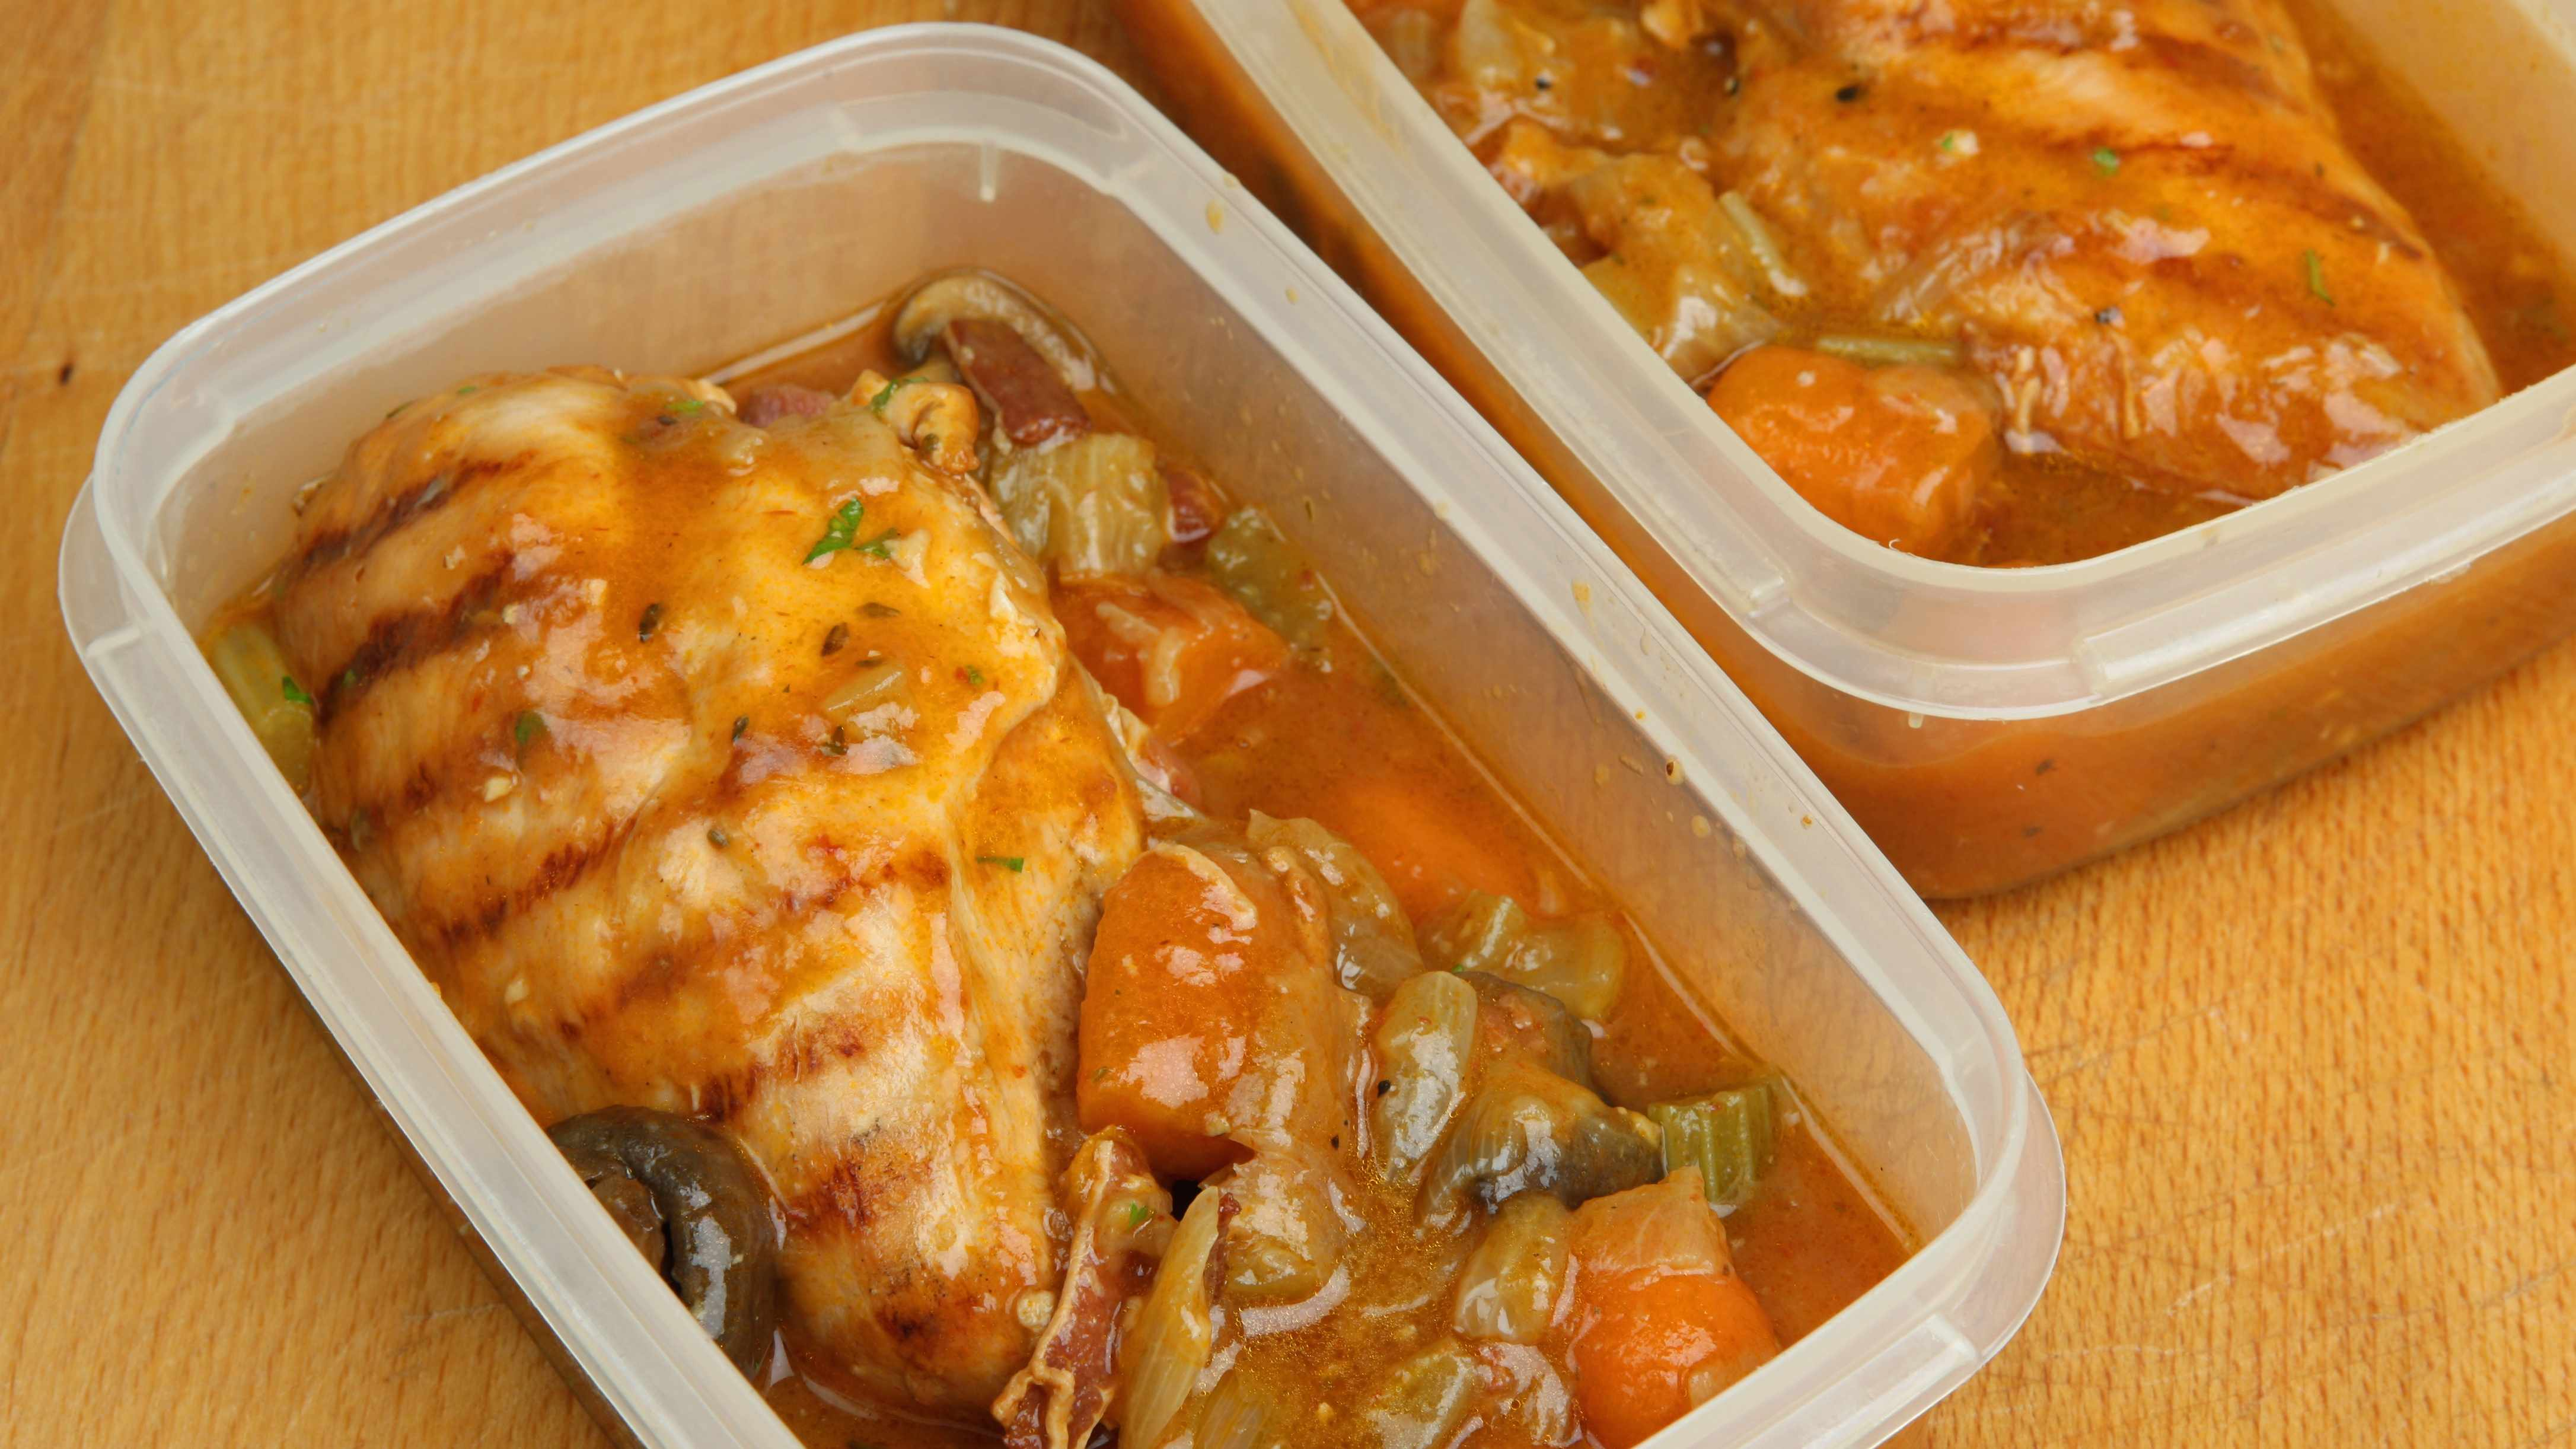 Making mayos recipes 5 meals you can freeze mayo clinic news network homemade frozen dinners are an excellent healthy option when you make them yourself and putting dinner on ice isnt as difficult as you may think forumfinder Choice Image